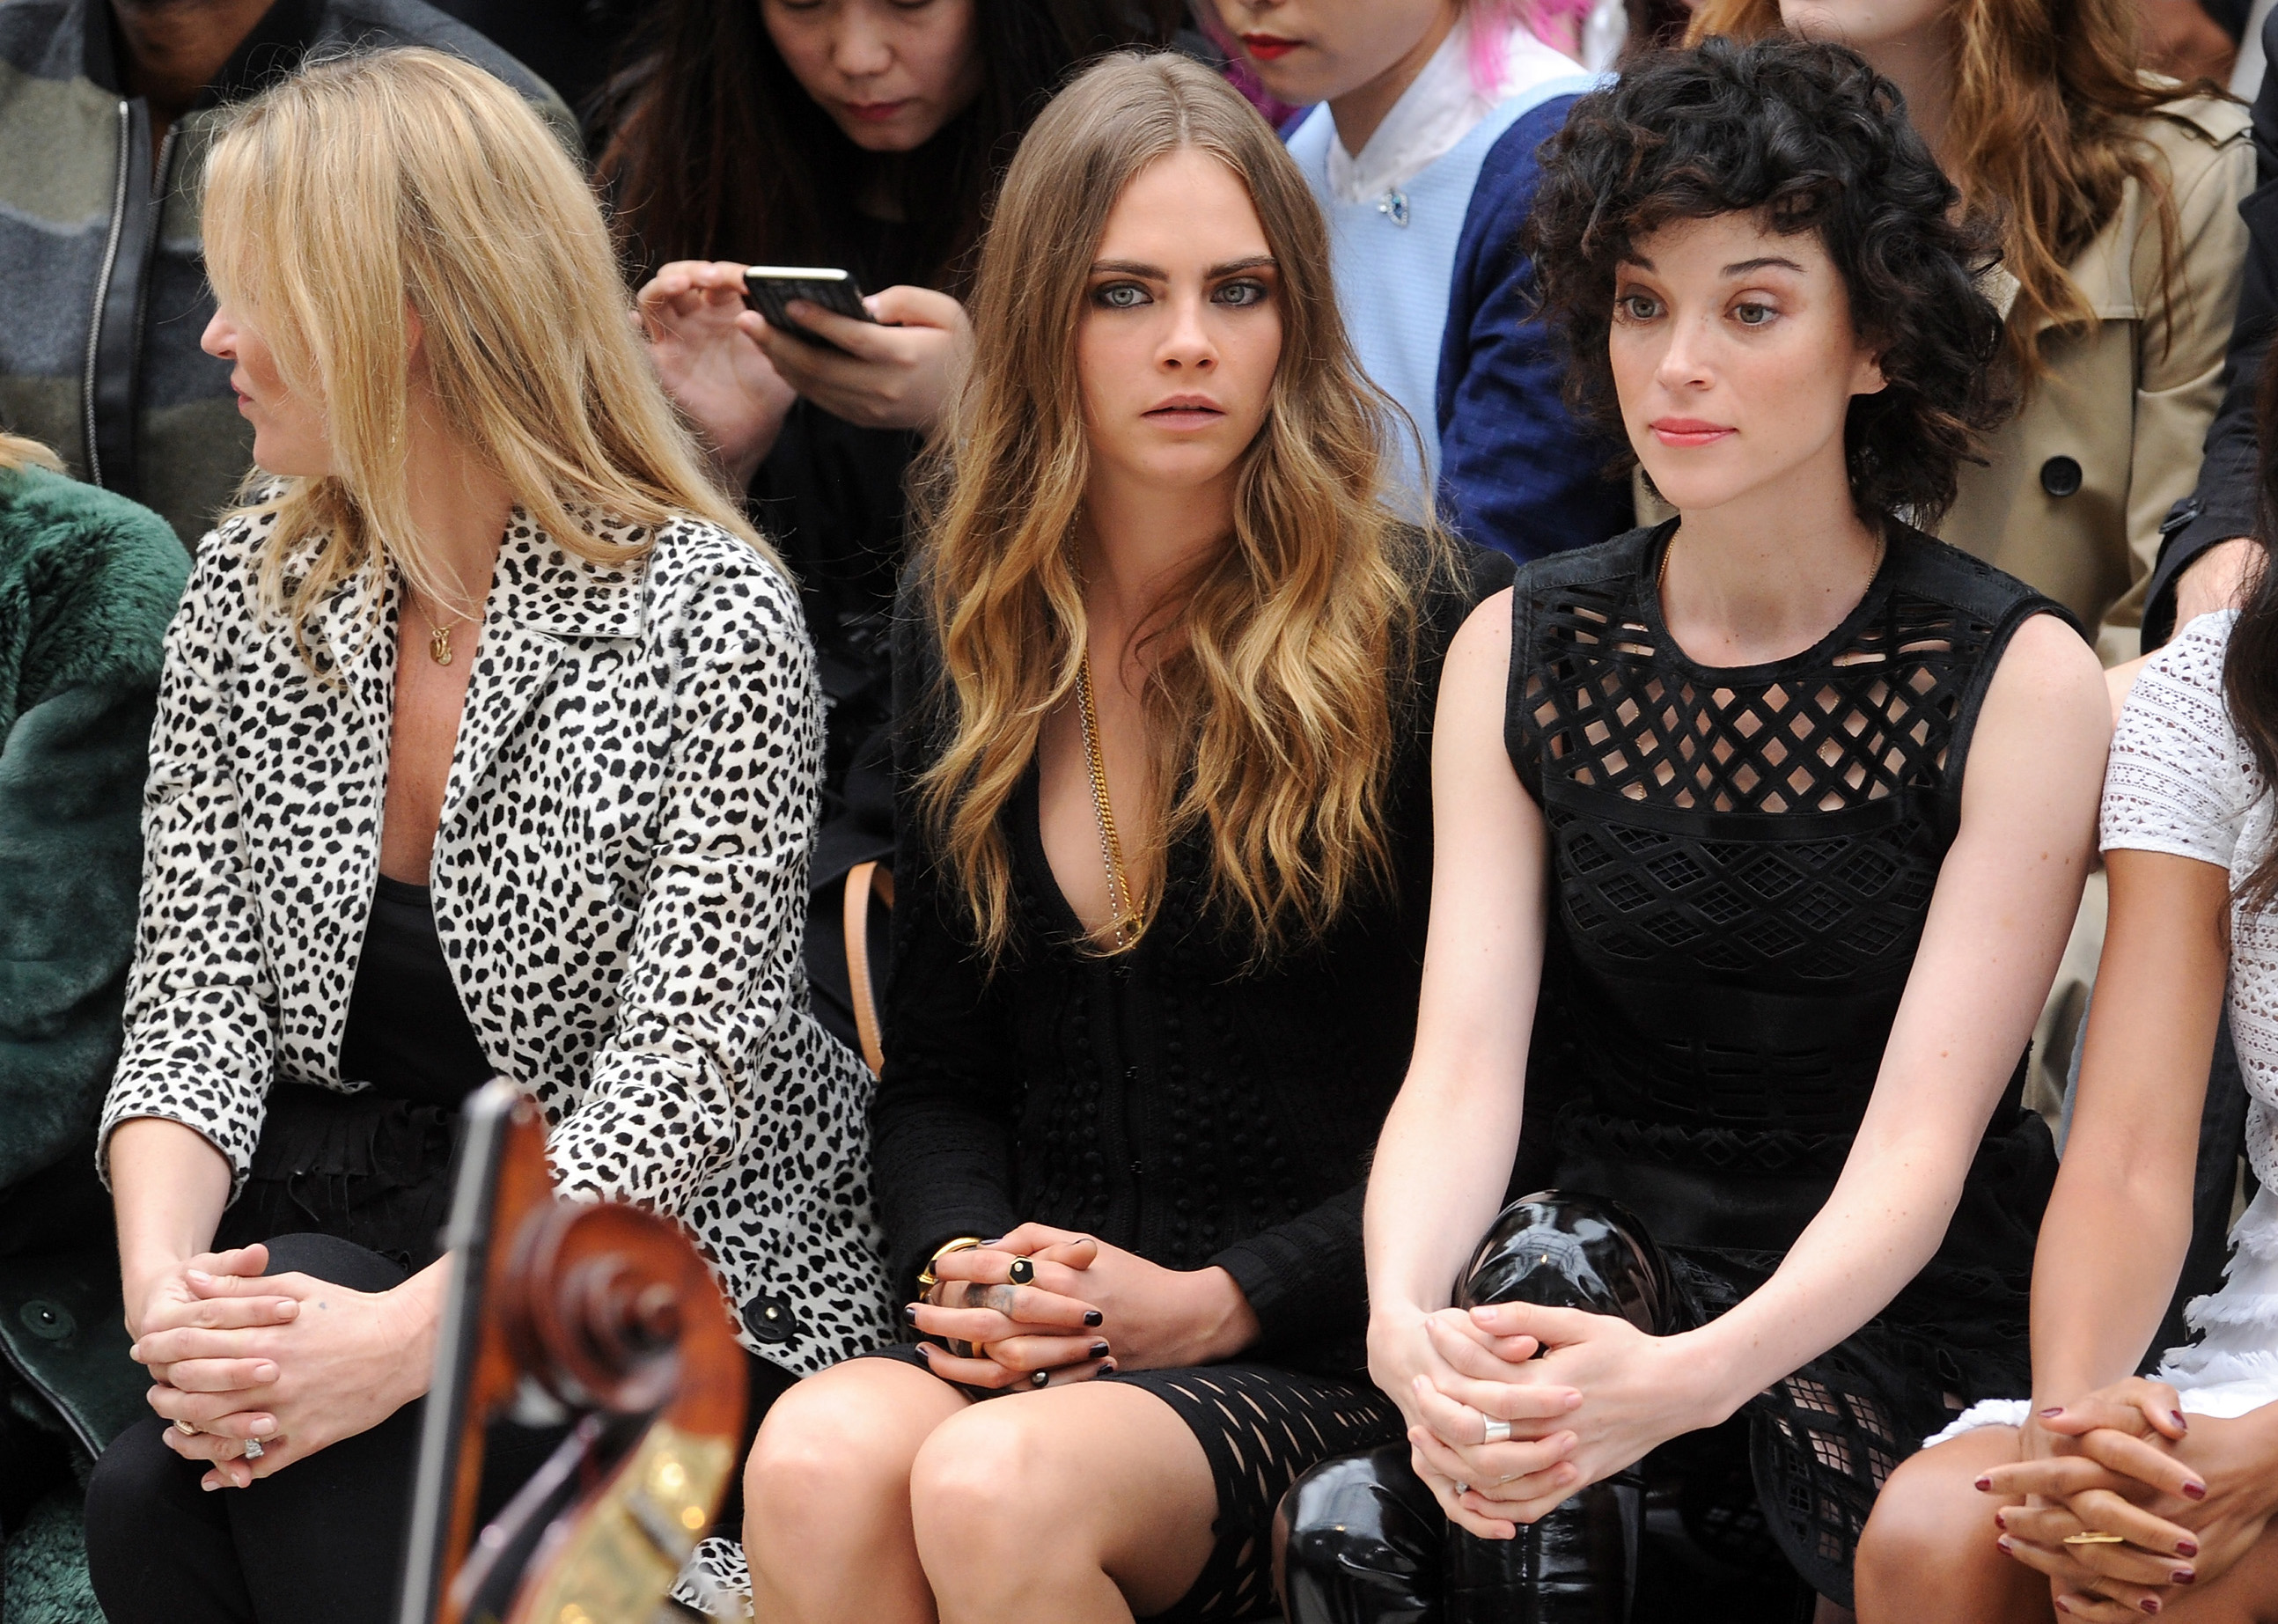 Who is cara delevingne dating in Melbourne